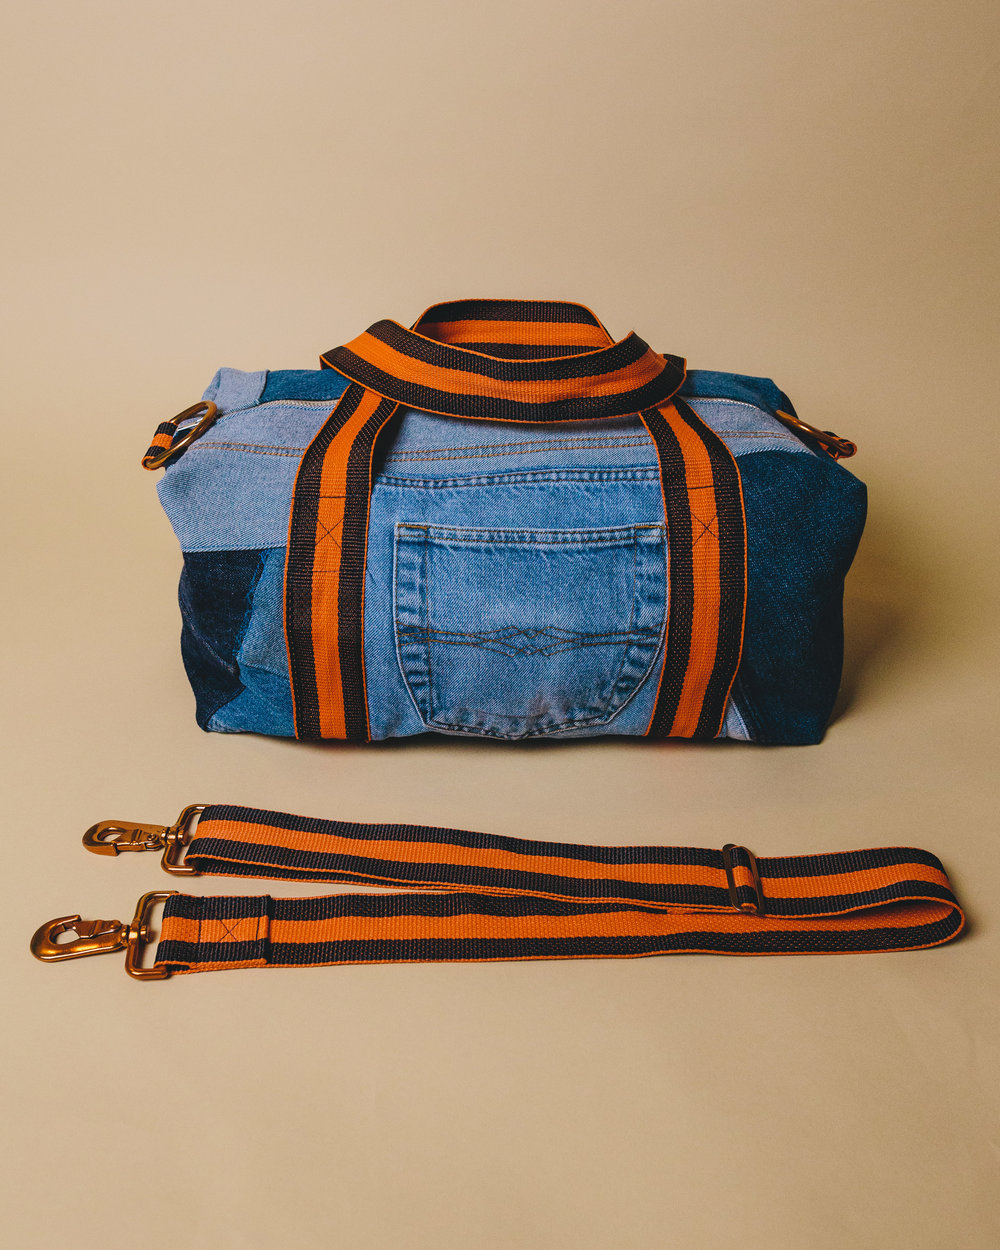 Denim Orange Duffel - Made from denim and patchworked together, this was actually inspired by one of my first pieces I ever made & sold, I just remade it in a similar style.